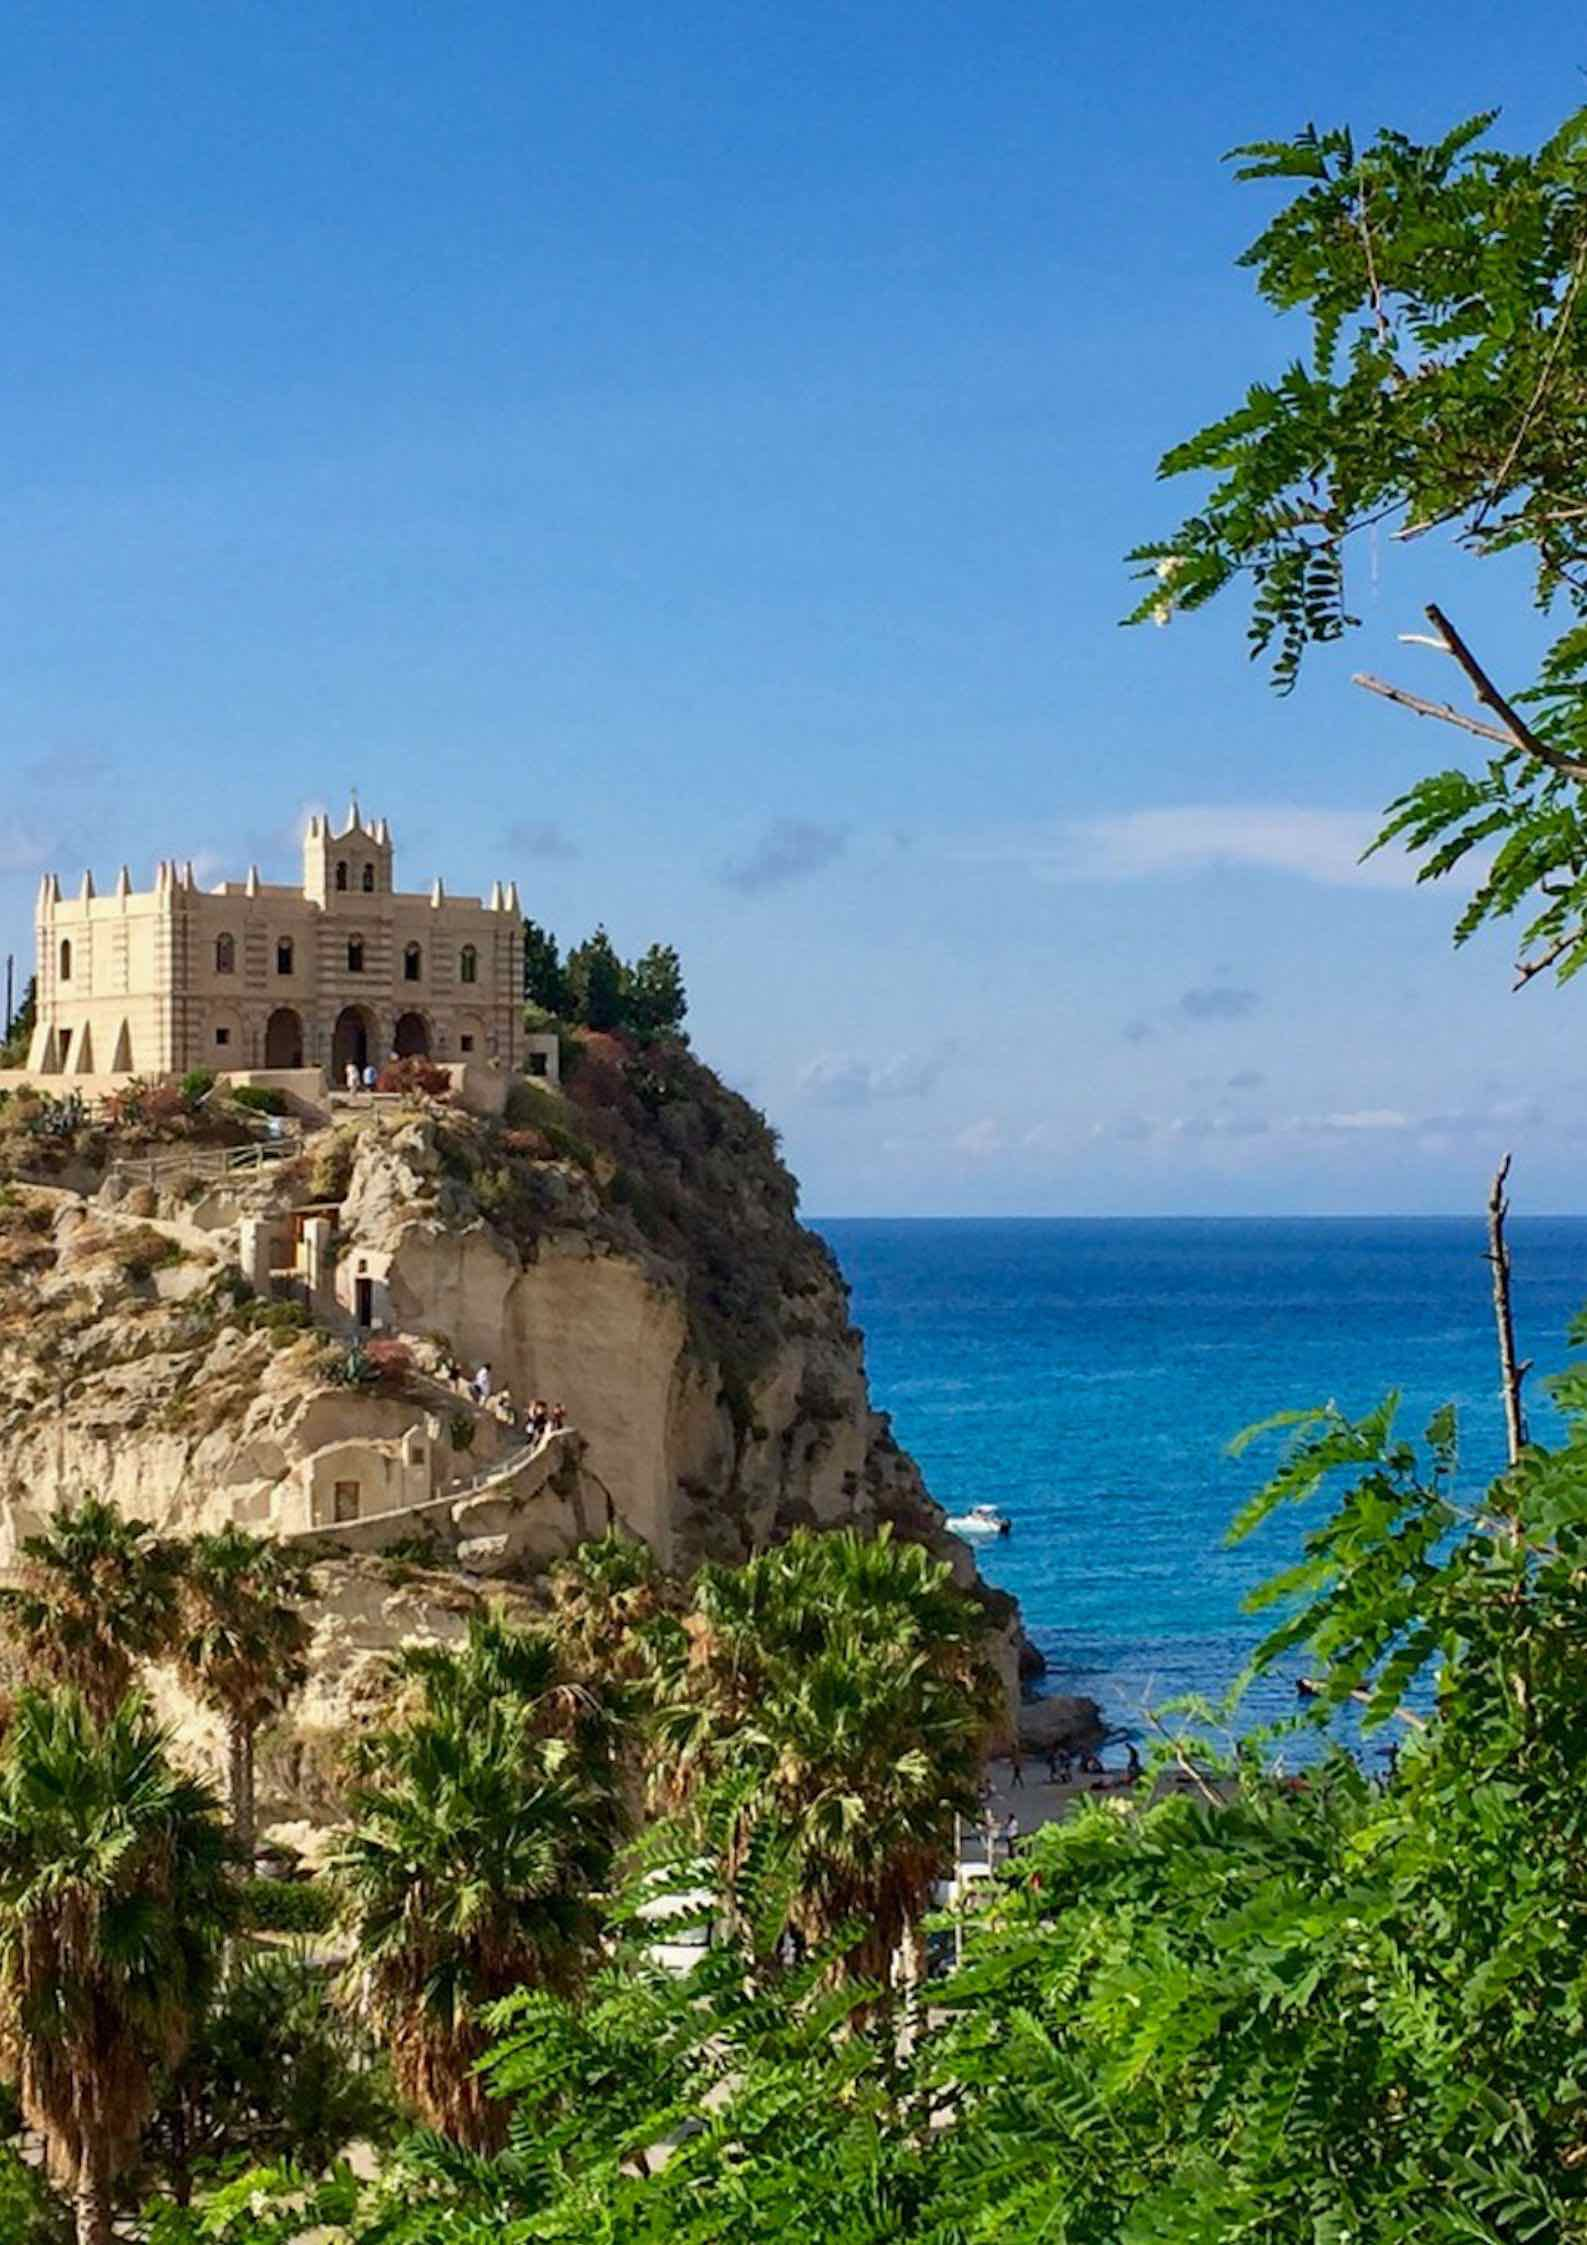 The church of Santa Maria dell'Isola, one of Tropea's icons